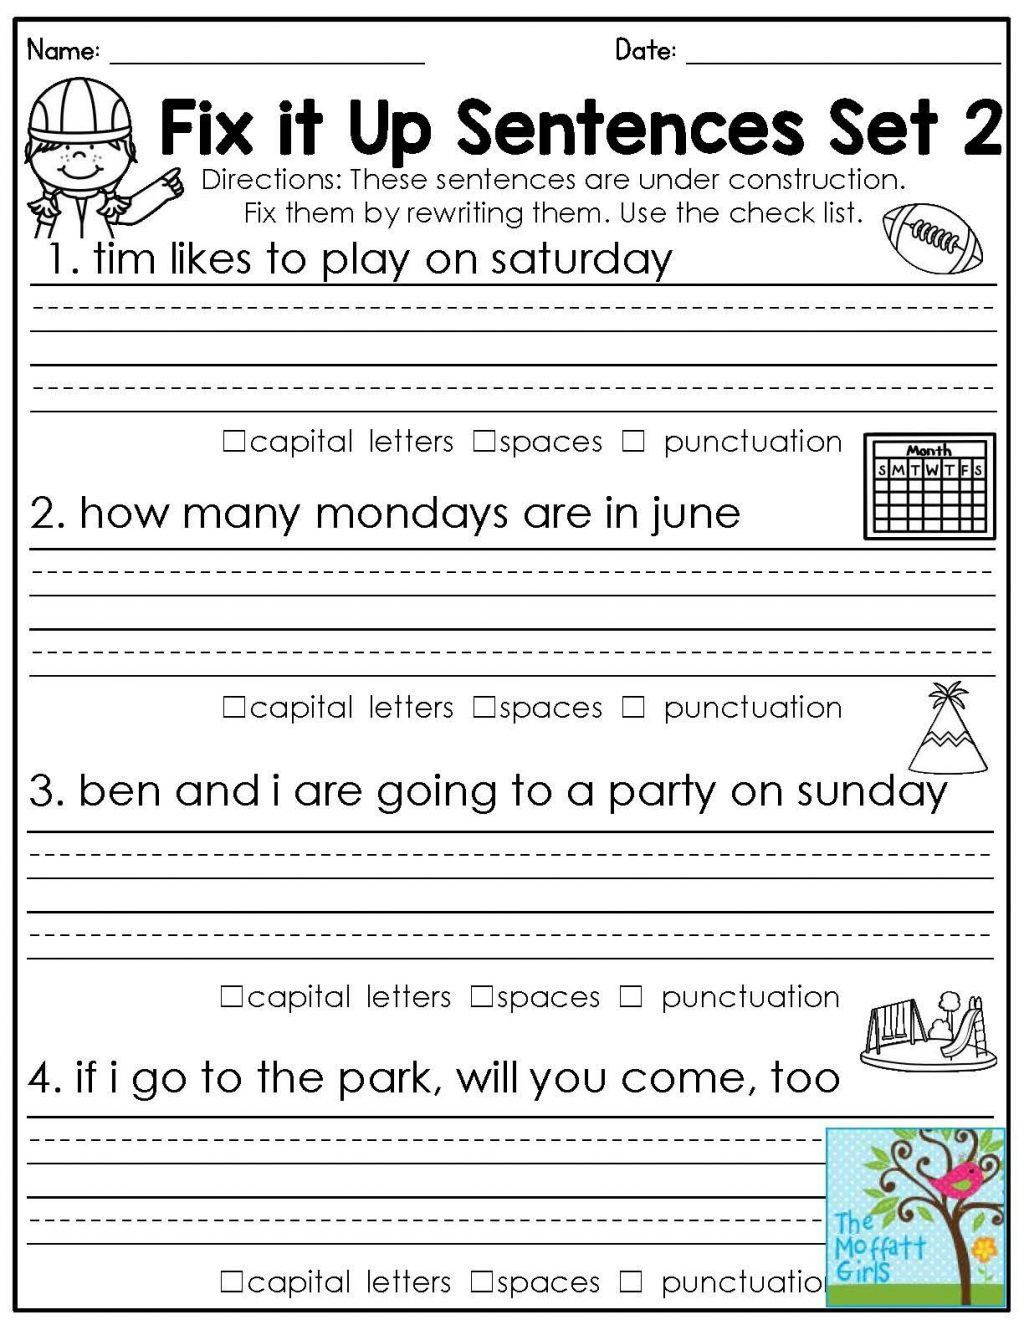 Third Grade Grammar Worksheet Pin On Educational Worksheets Template